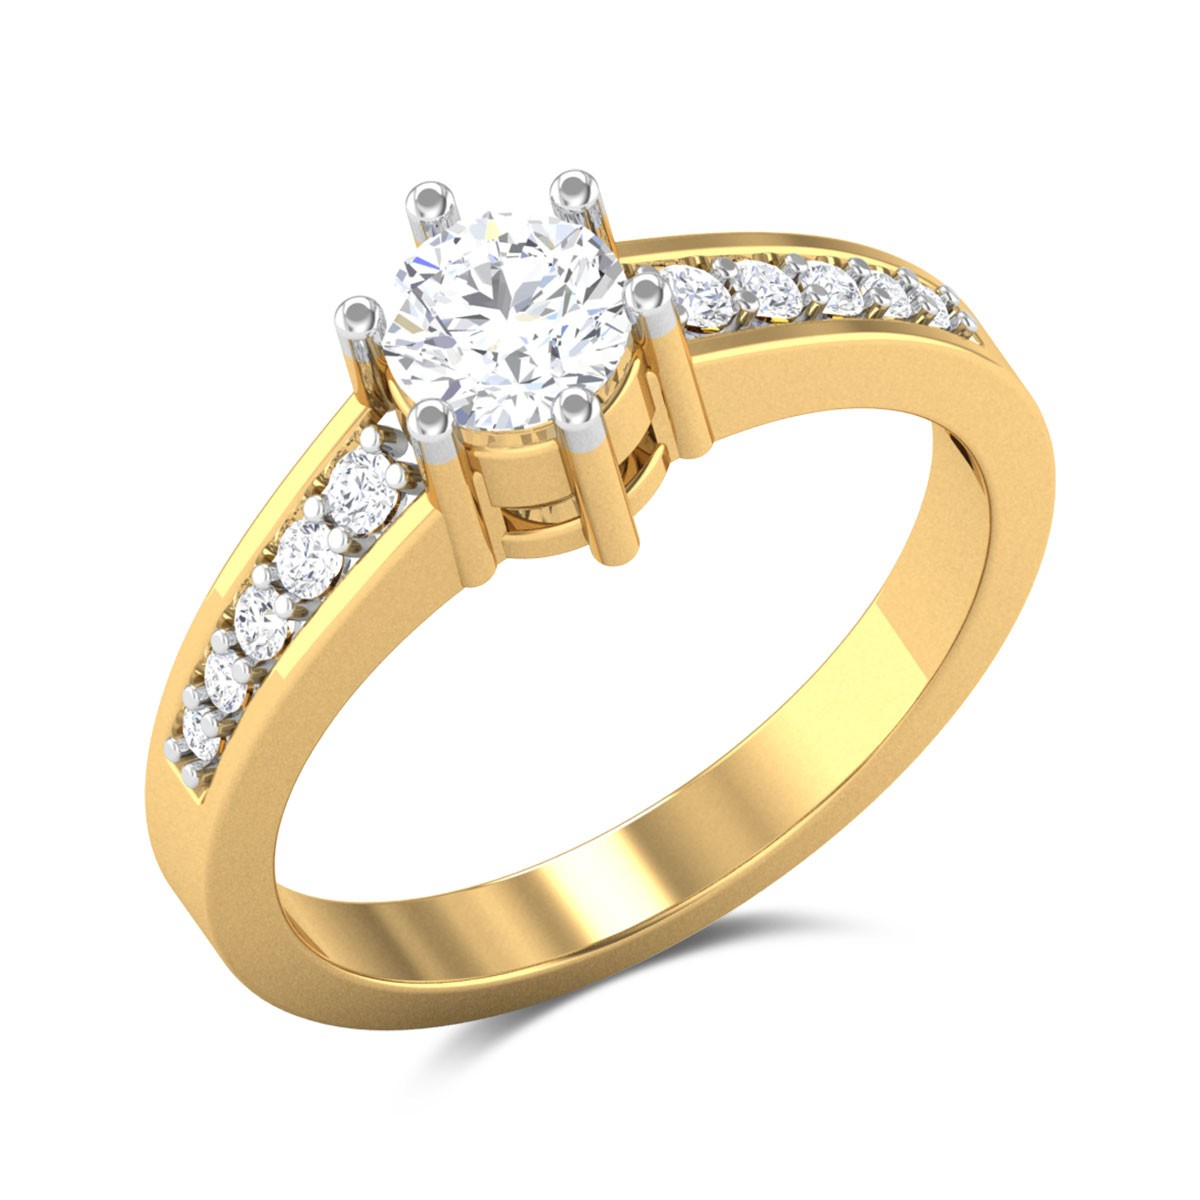 Letty Diamond 6 Prong Solitaire Ring